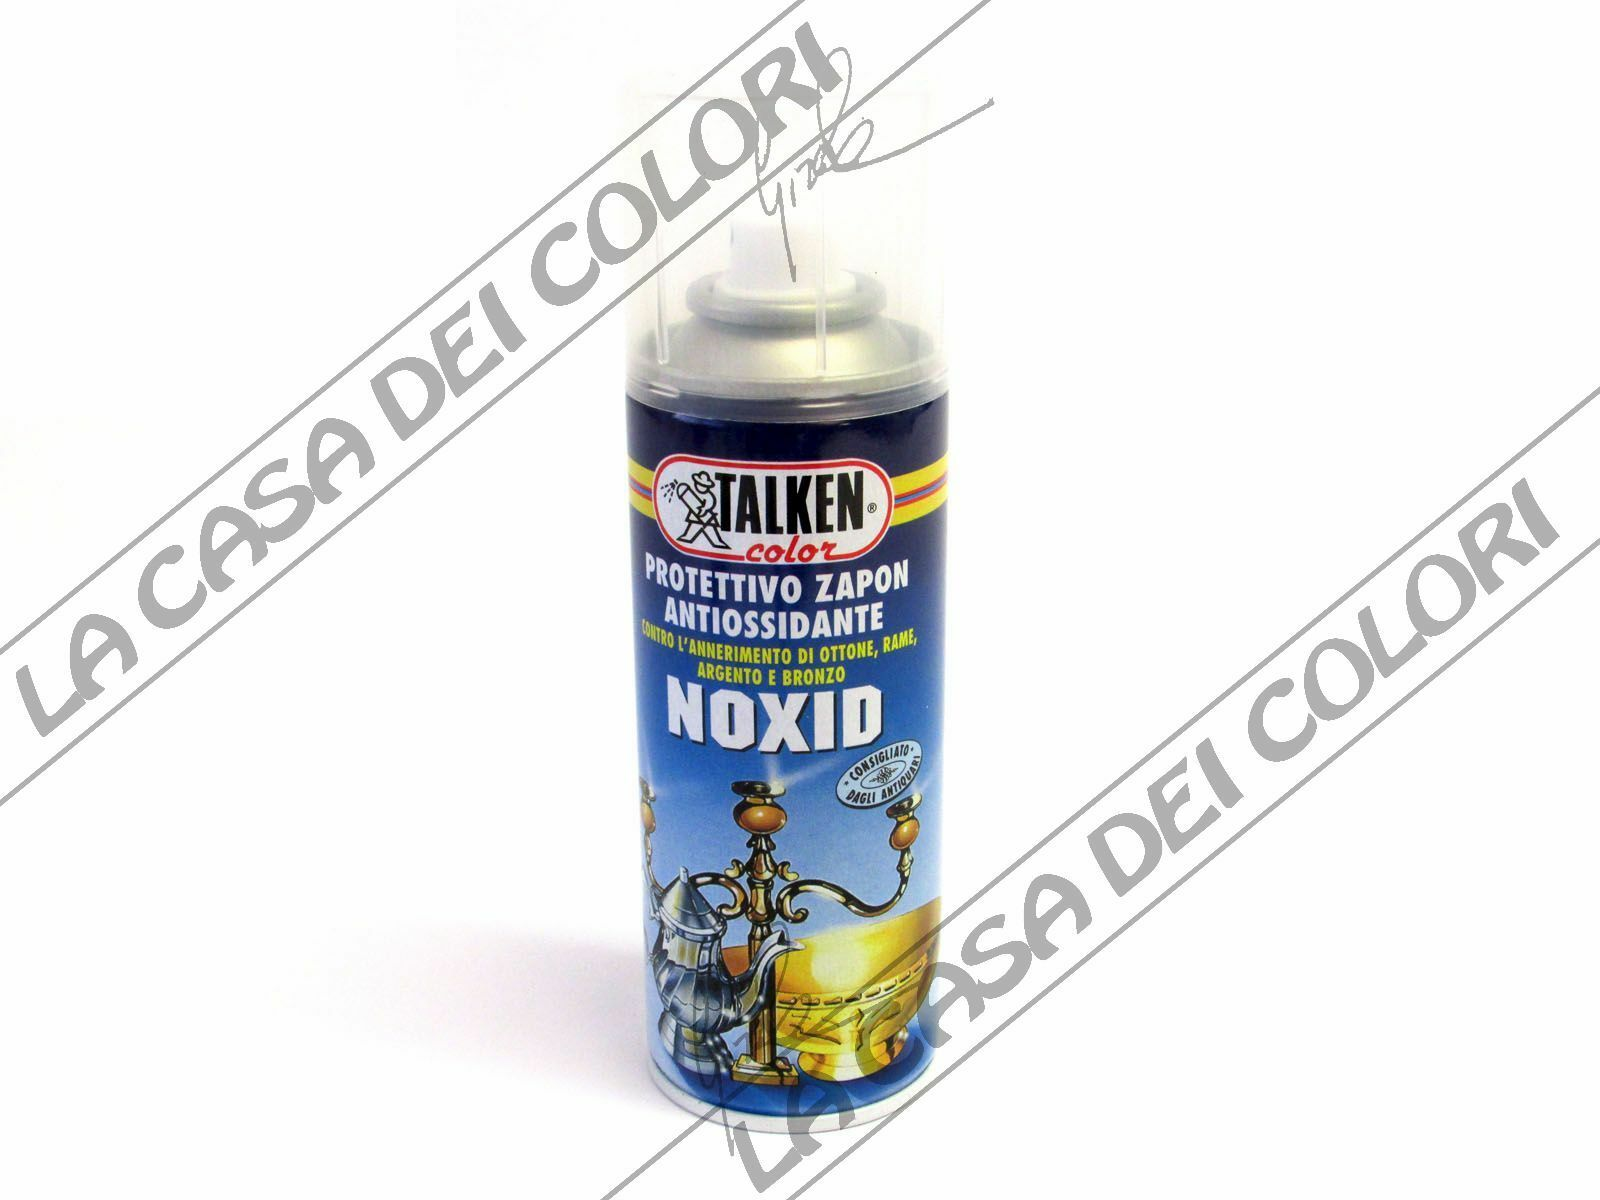 TALKEN - NOXID - 200 ml - SPRAY PROTETTIVO ZAPON ANTIOSSIDANTE